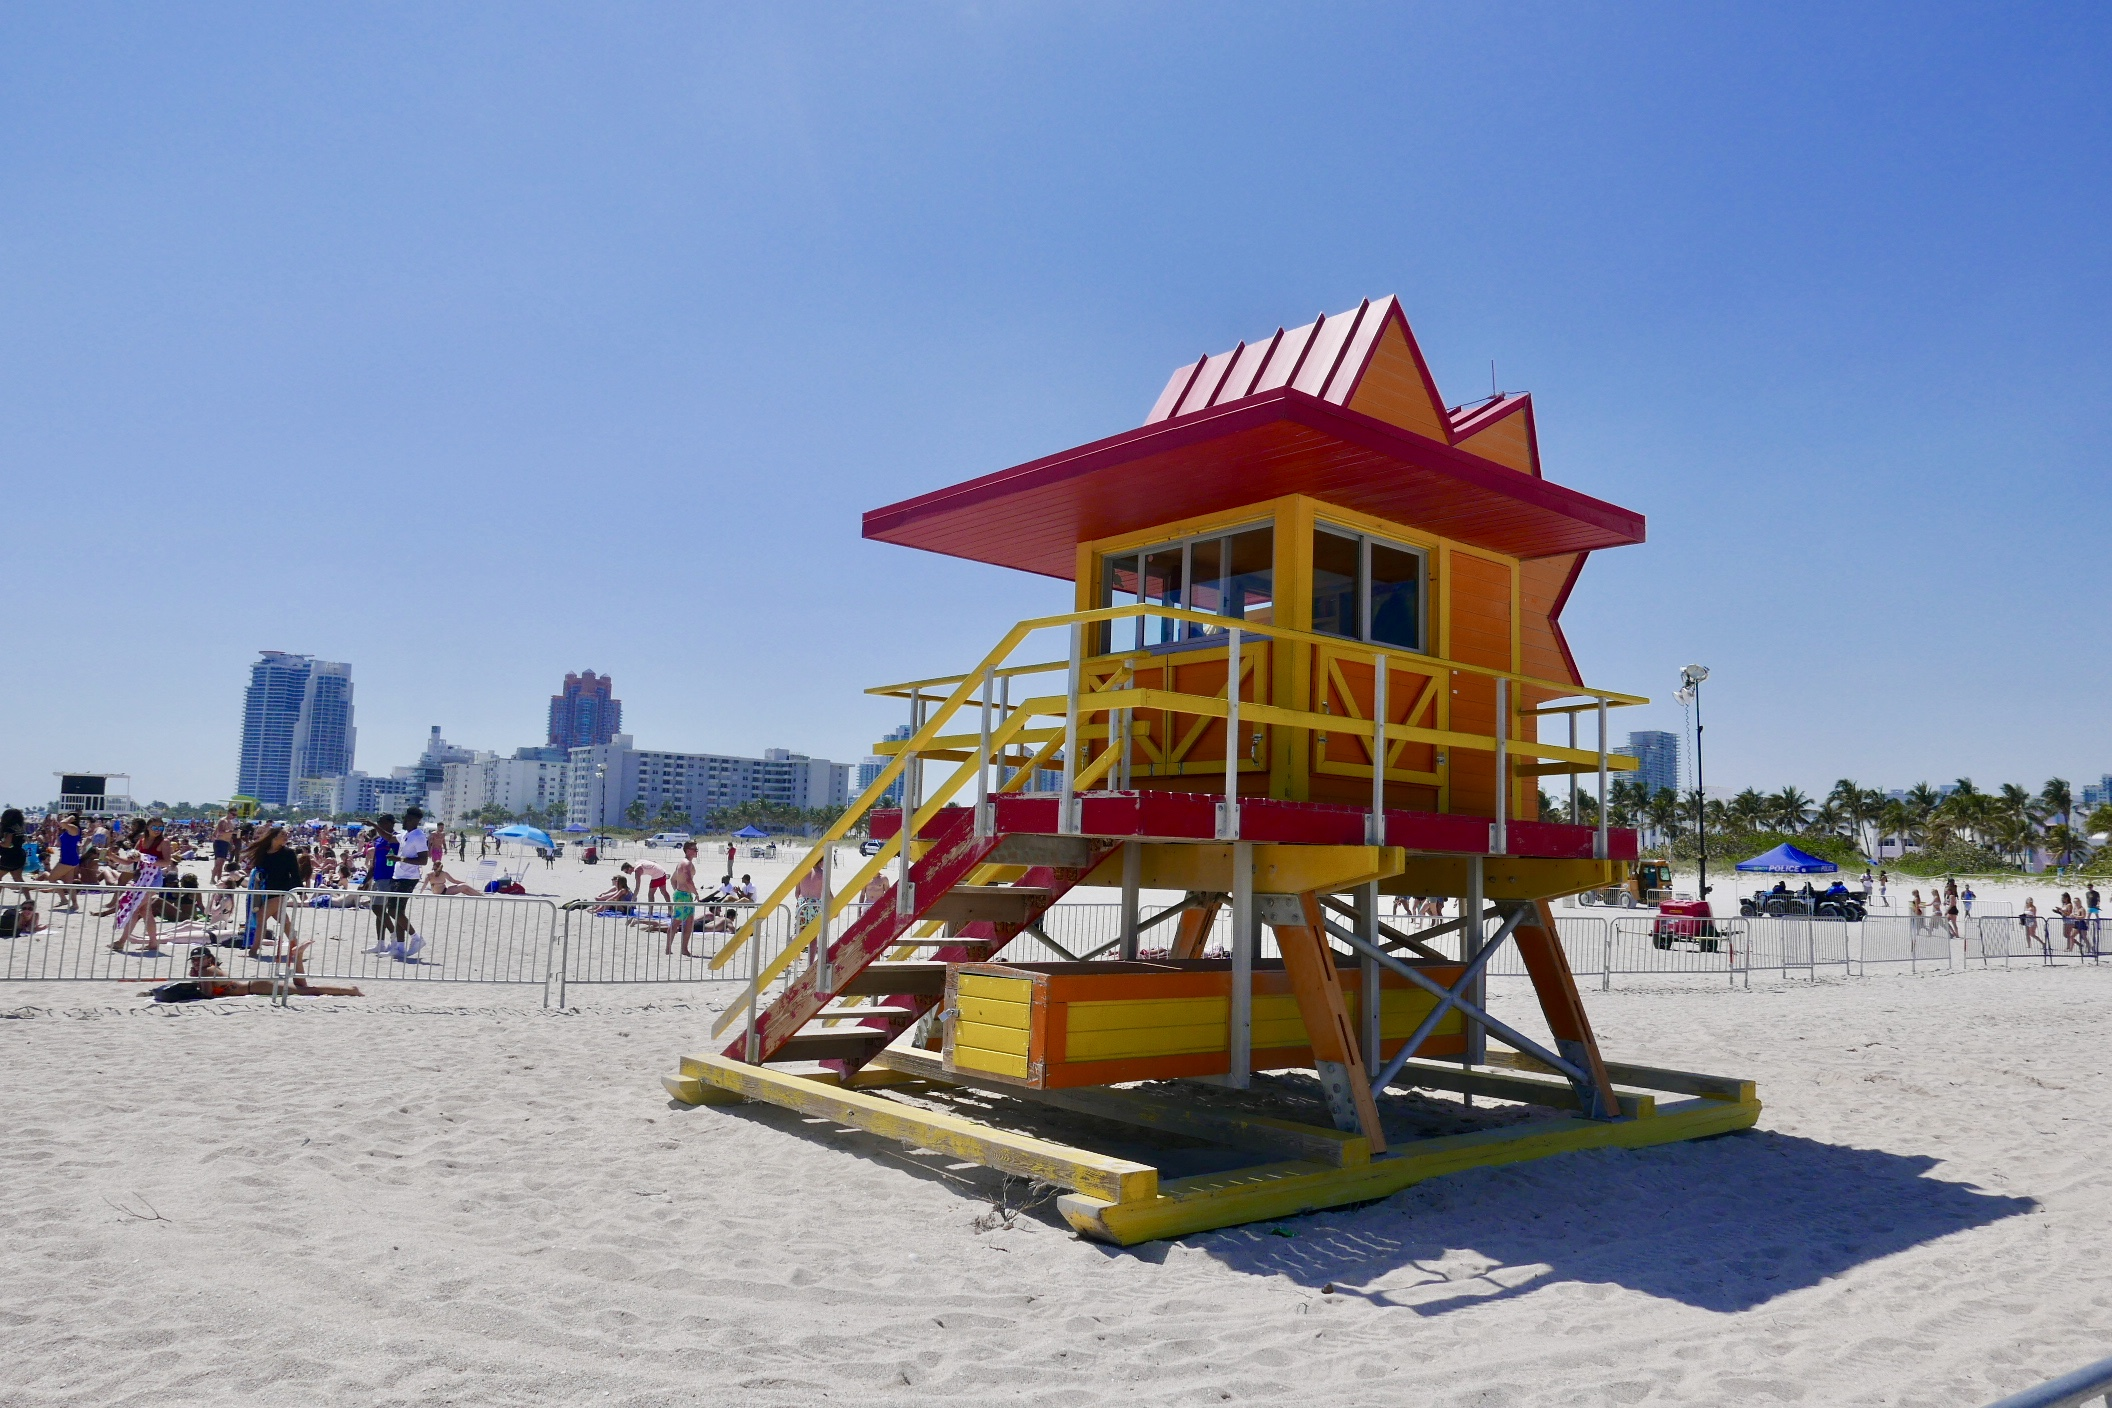 10 Things You Should Do When Visiting South Beach, Miami